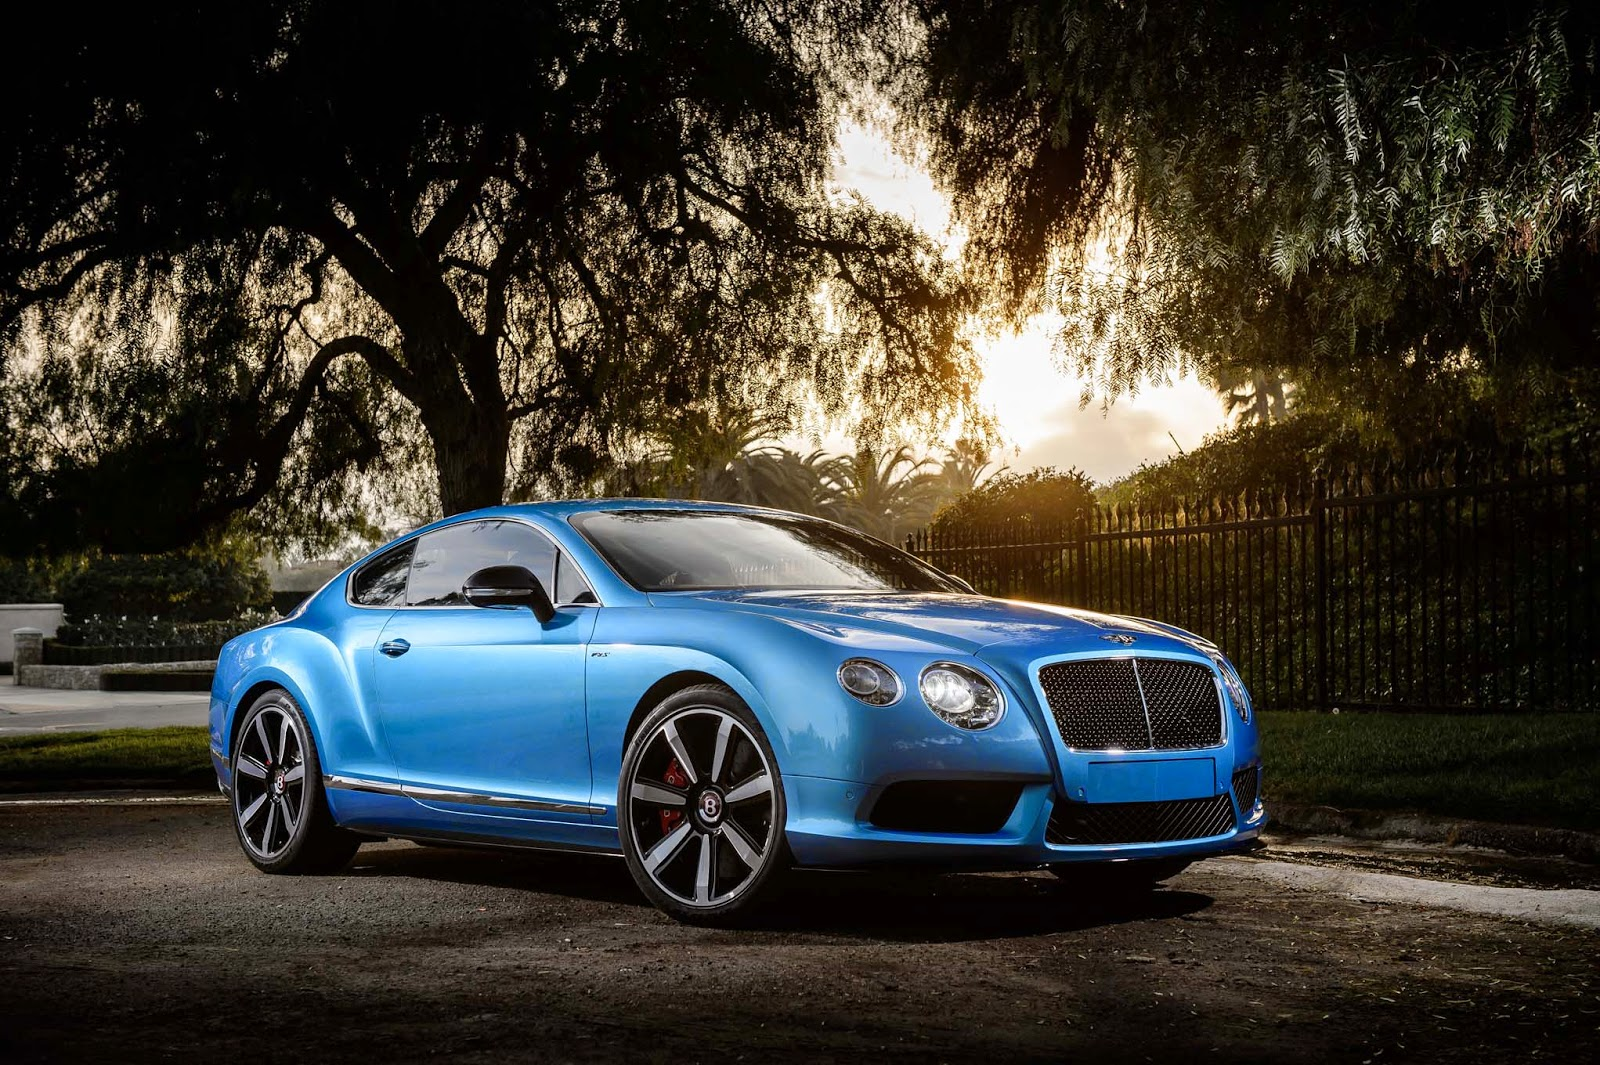 Bentley Continental GT V8 S Front View Image